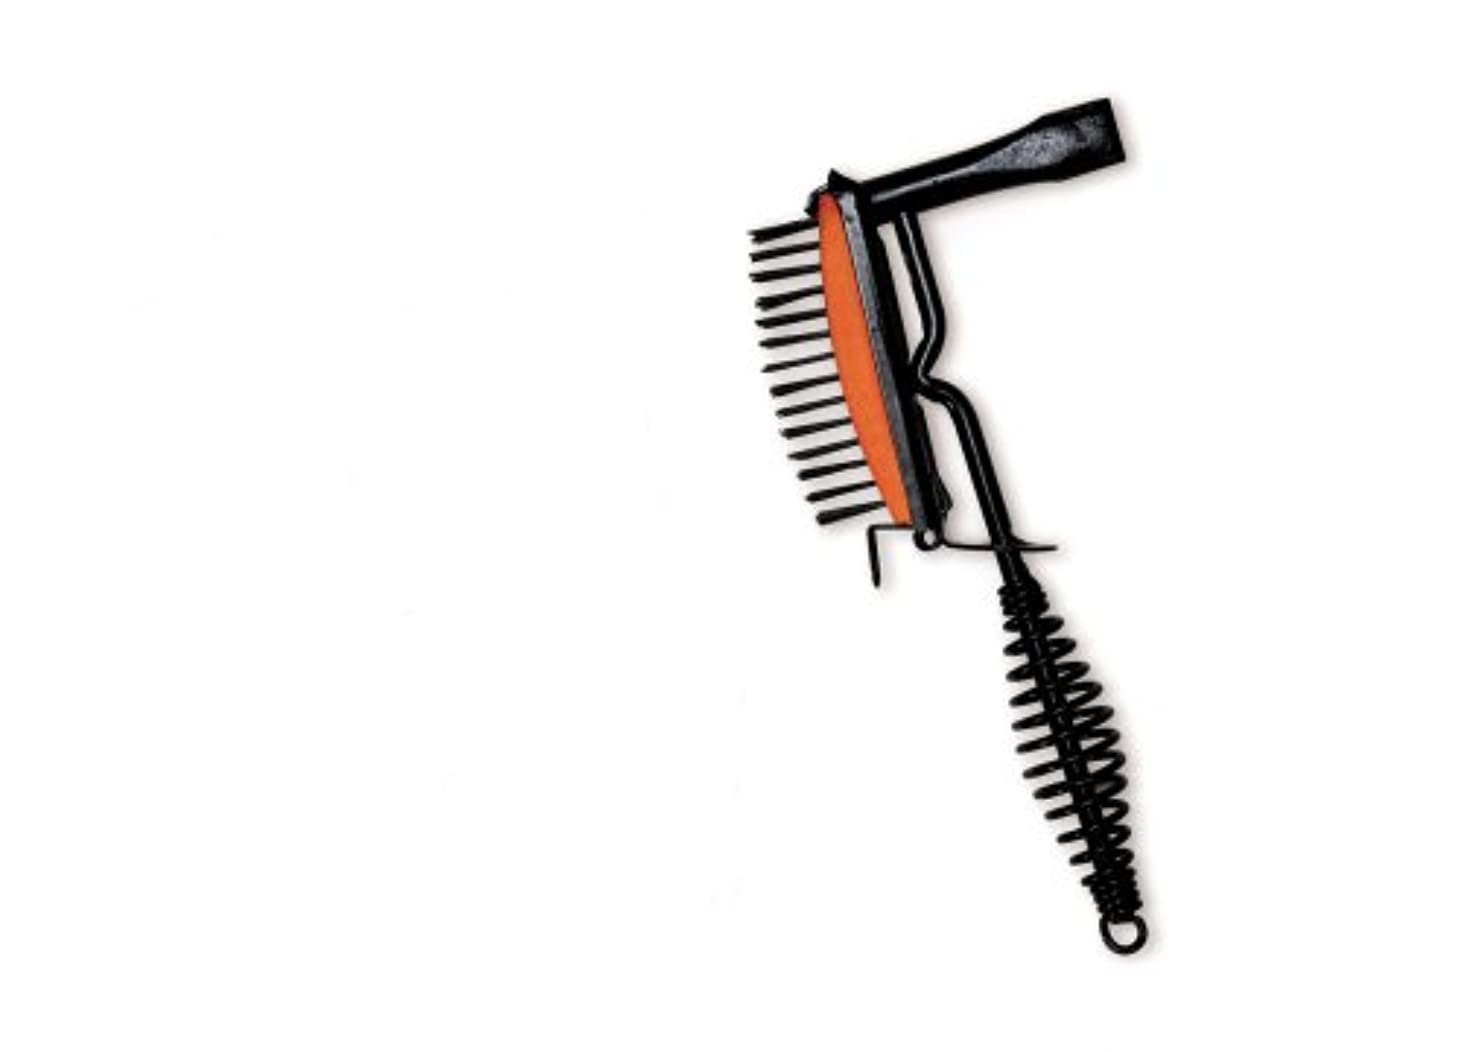 Hobart 770069 Welding Hammer Chipping - with Wire Brush